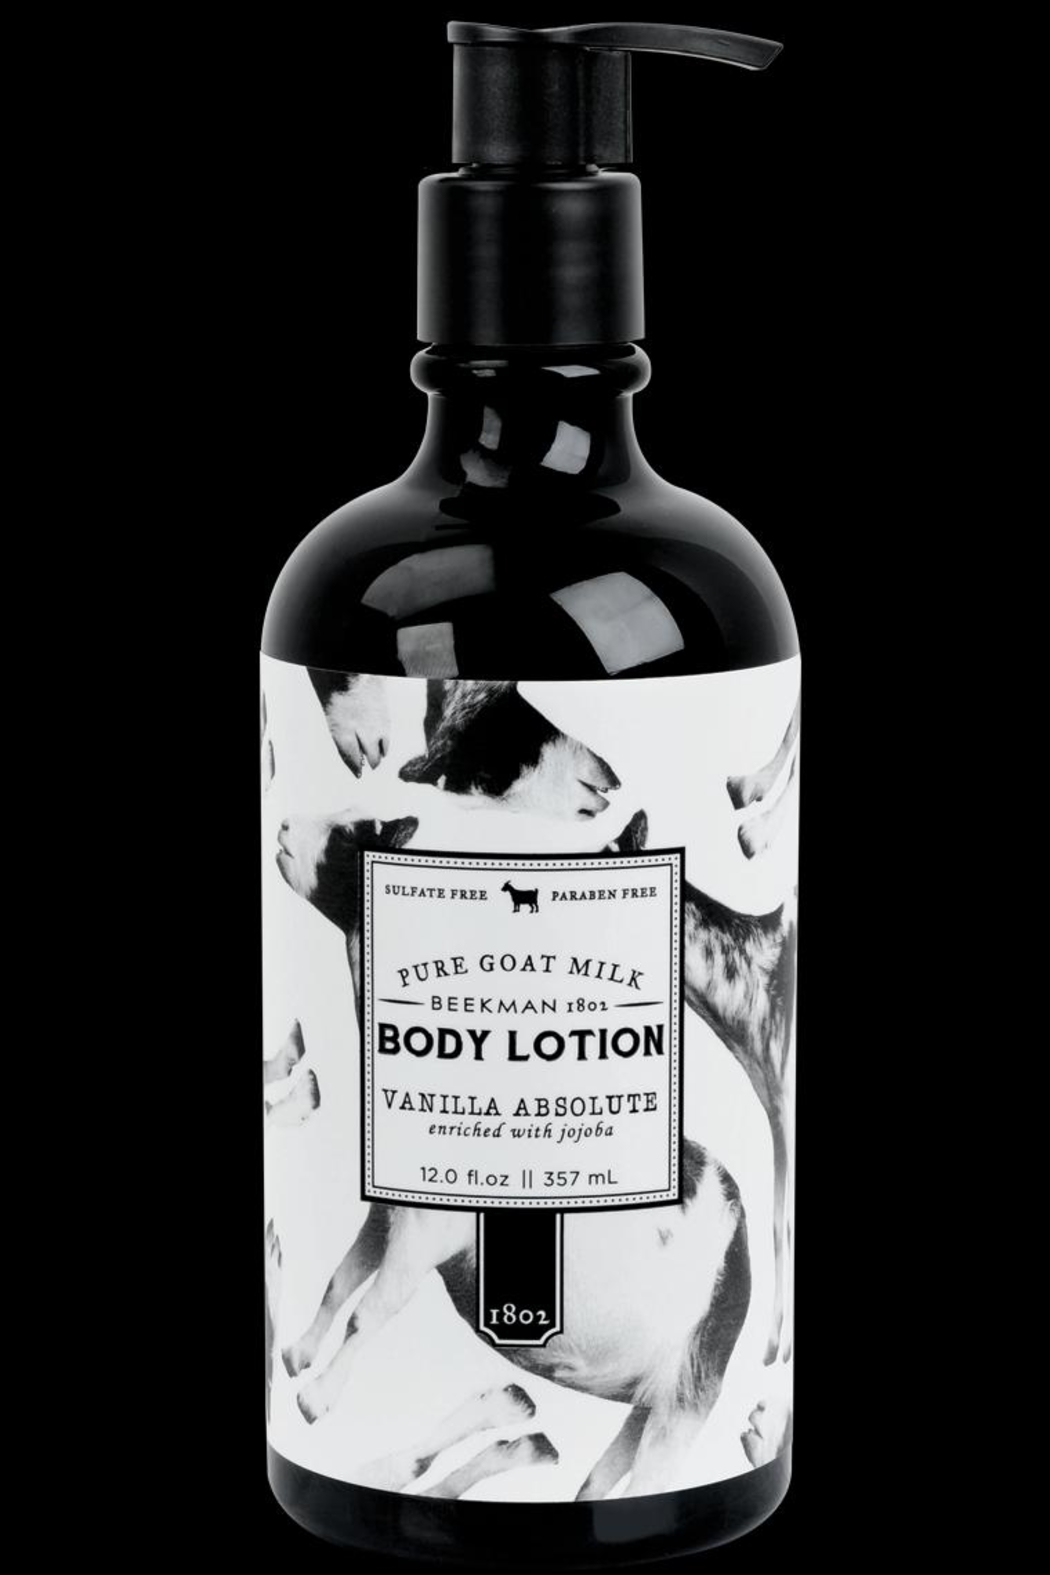 Beekman 1802 Goat Milk Bodylotion - Main Image